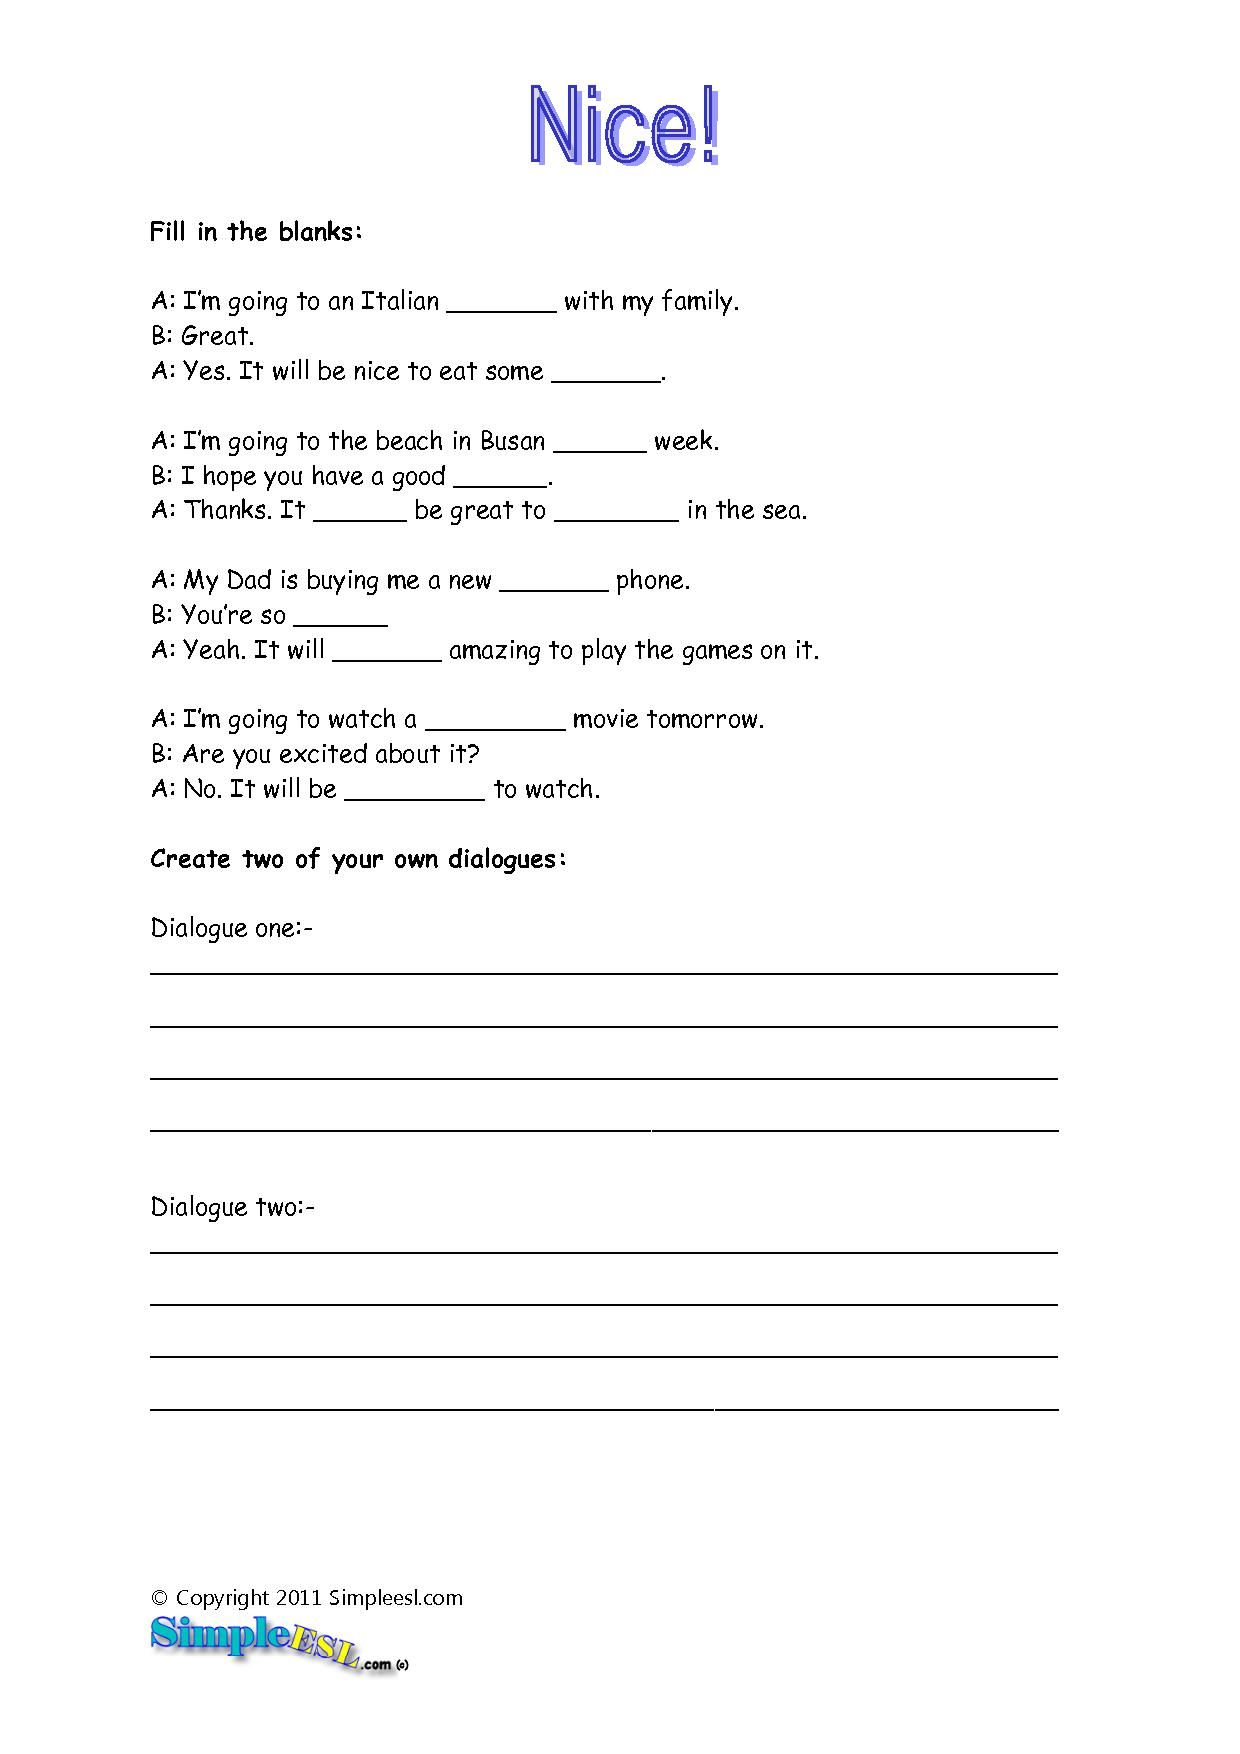 Printable English Language Arts Worksheets From Super